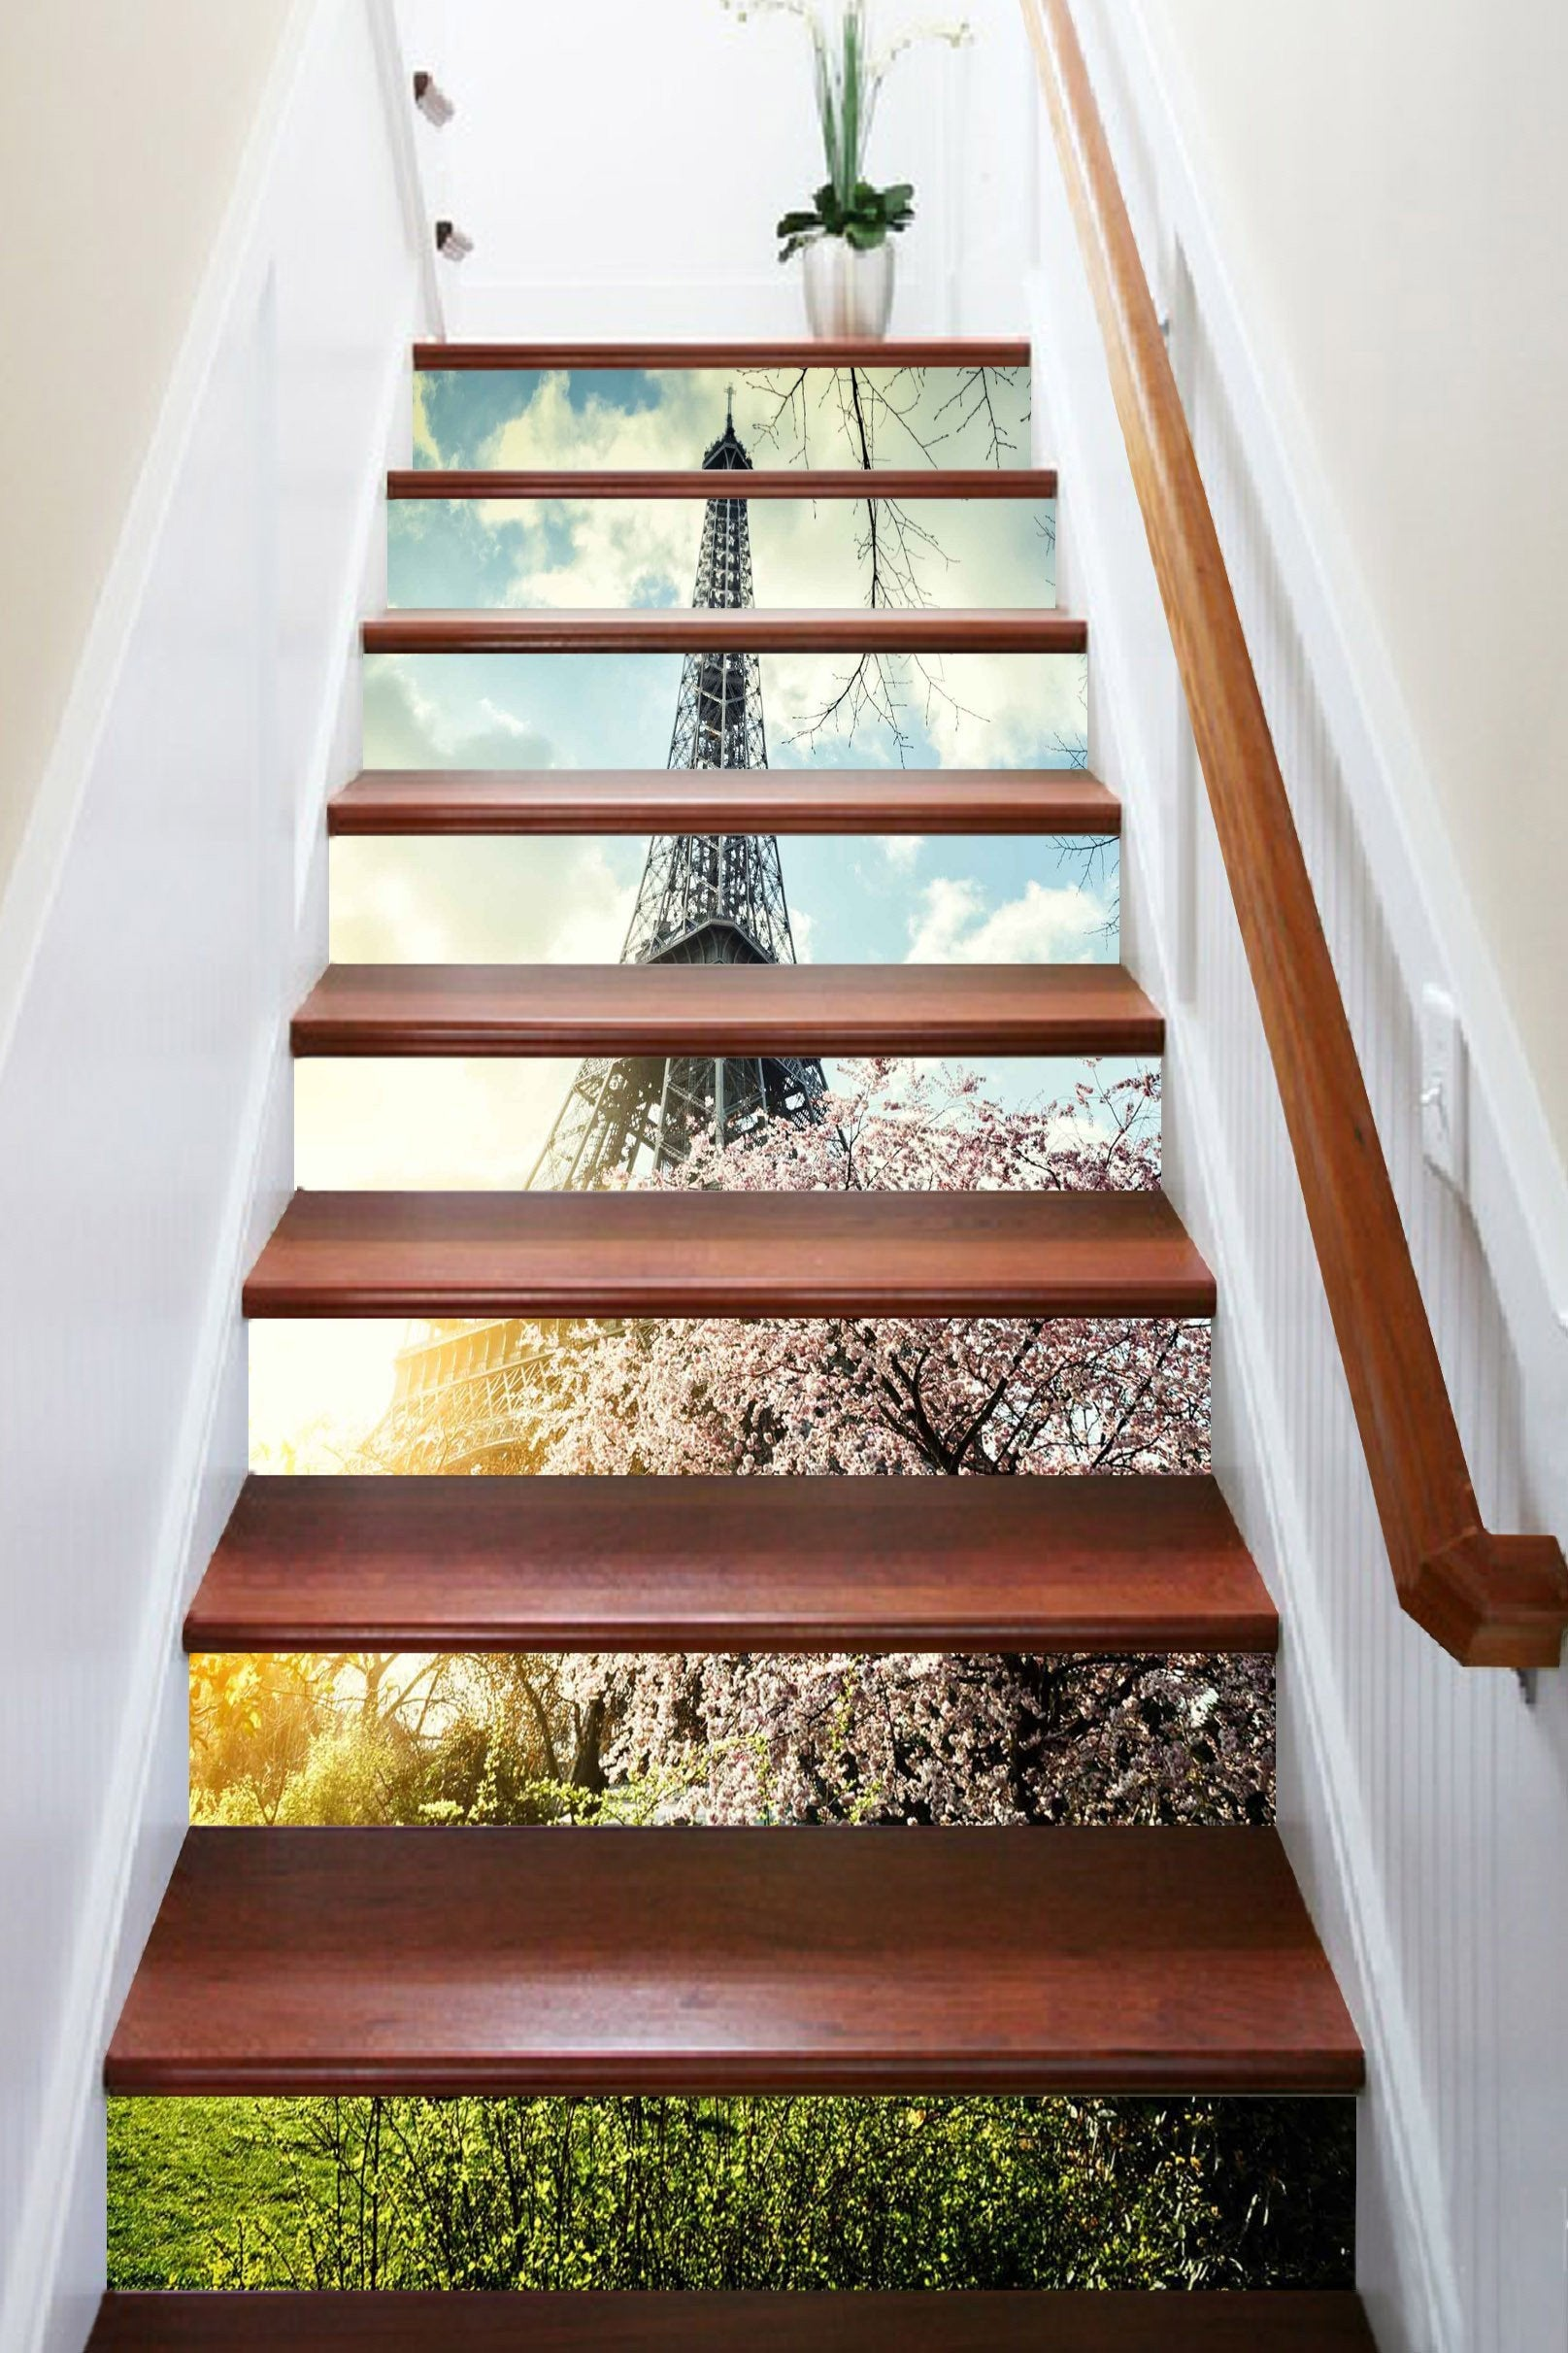 3D Eiffel Tower Flowers 1579 Stair Risers Wallpaper AJ Wallpaper